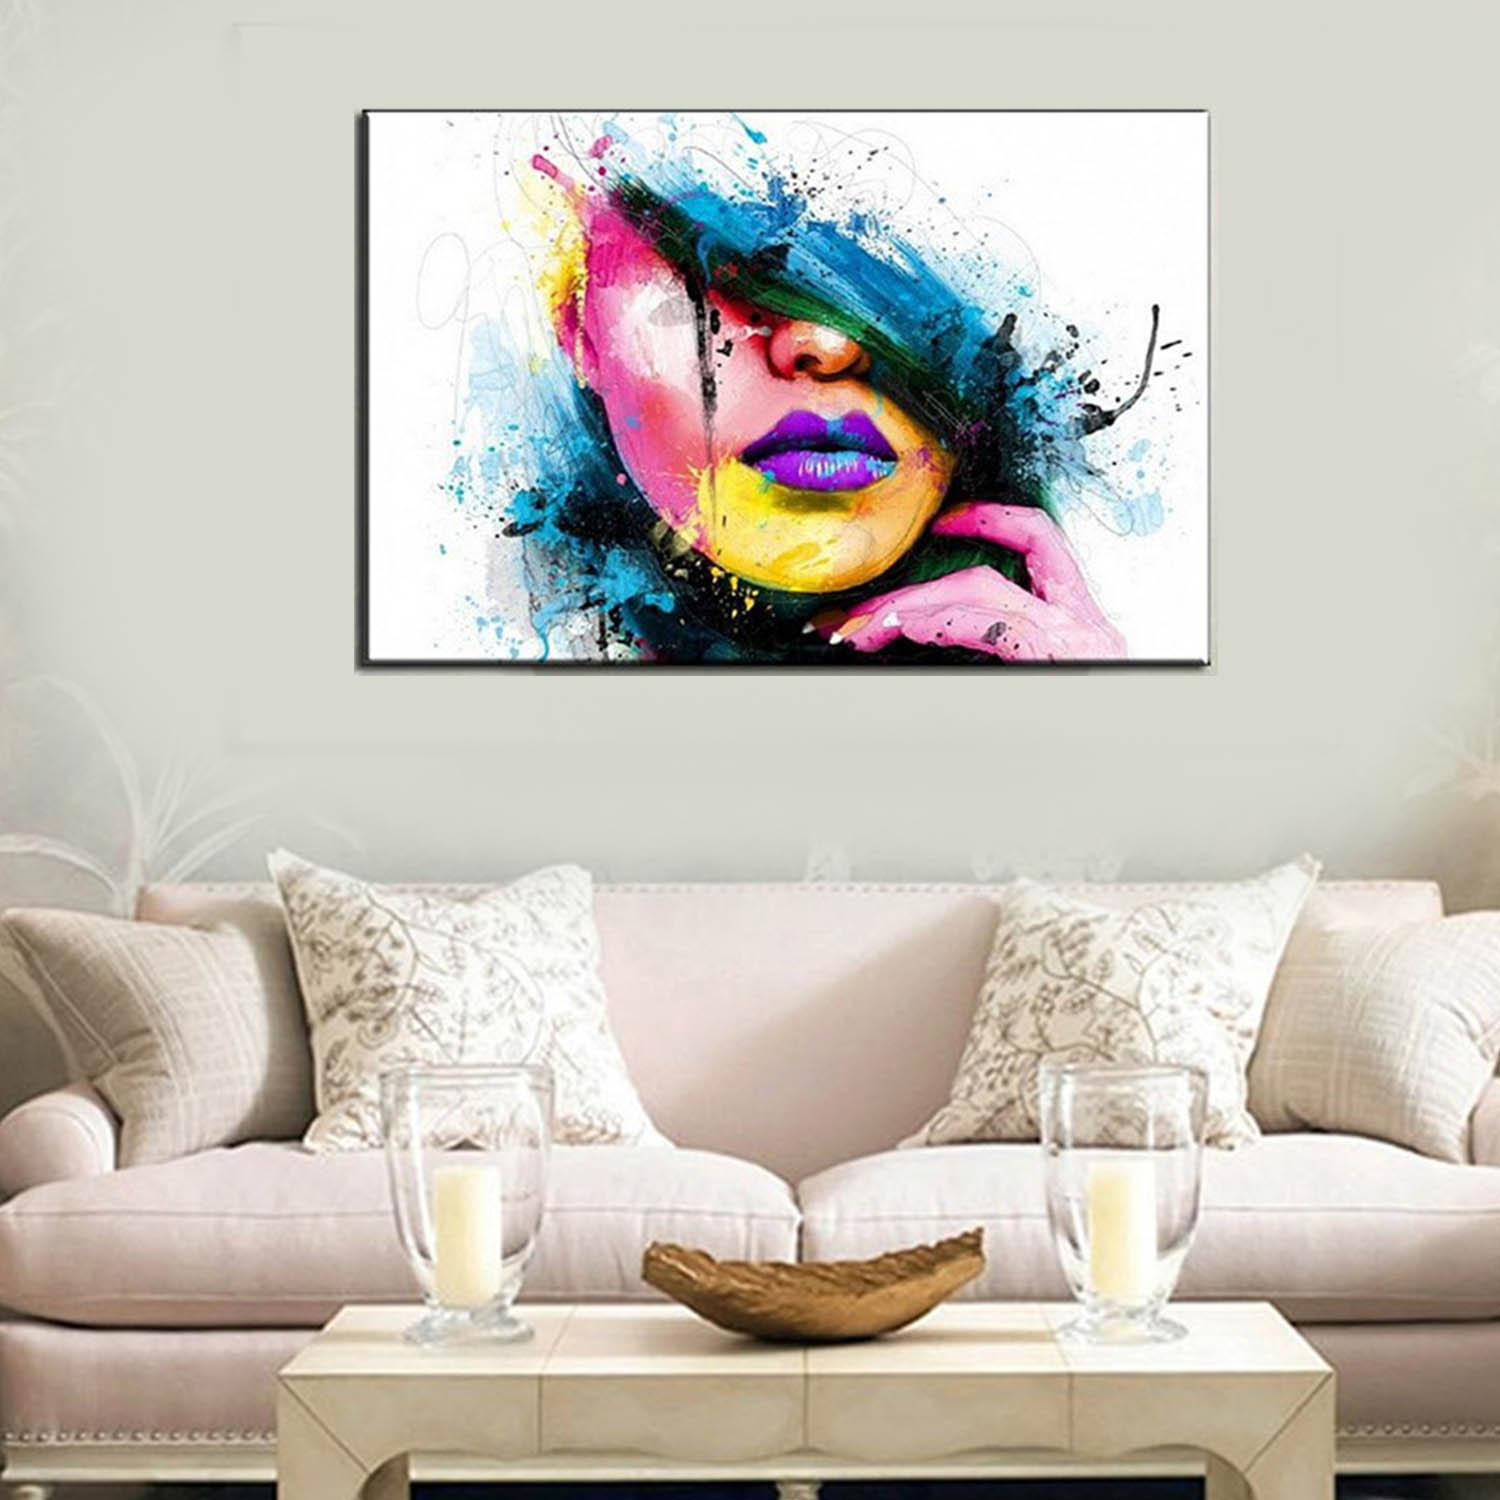 Abstract Art Style Lady Face Printed Canvas Decoration Wall Art for Home Living Room Bedroom Office Hotel Pub - intl